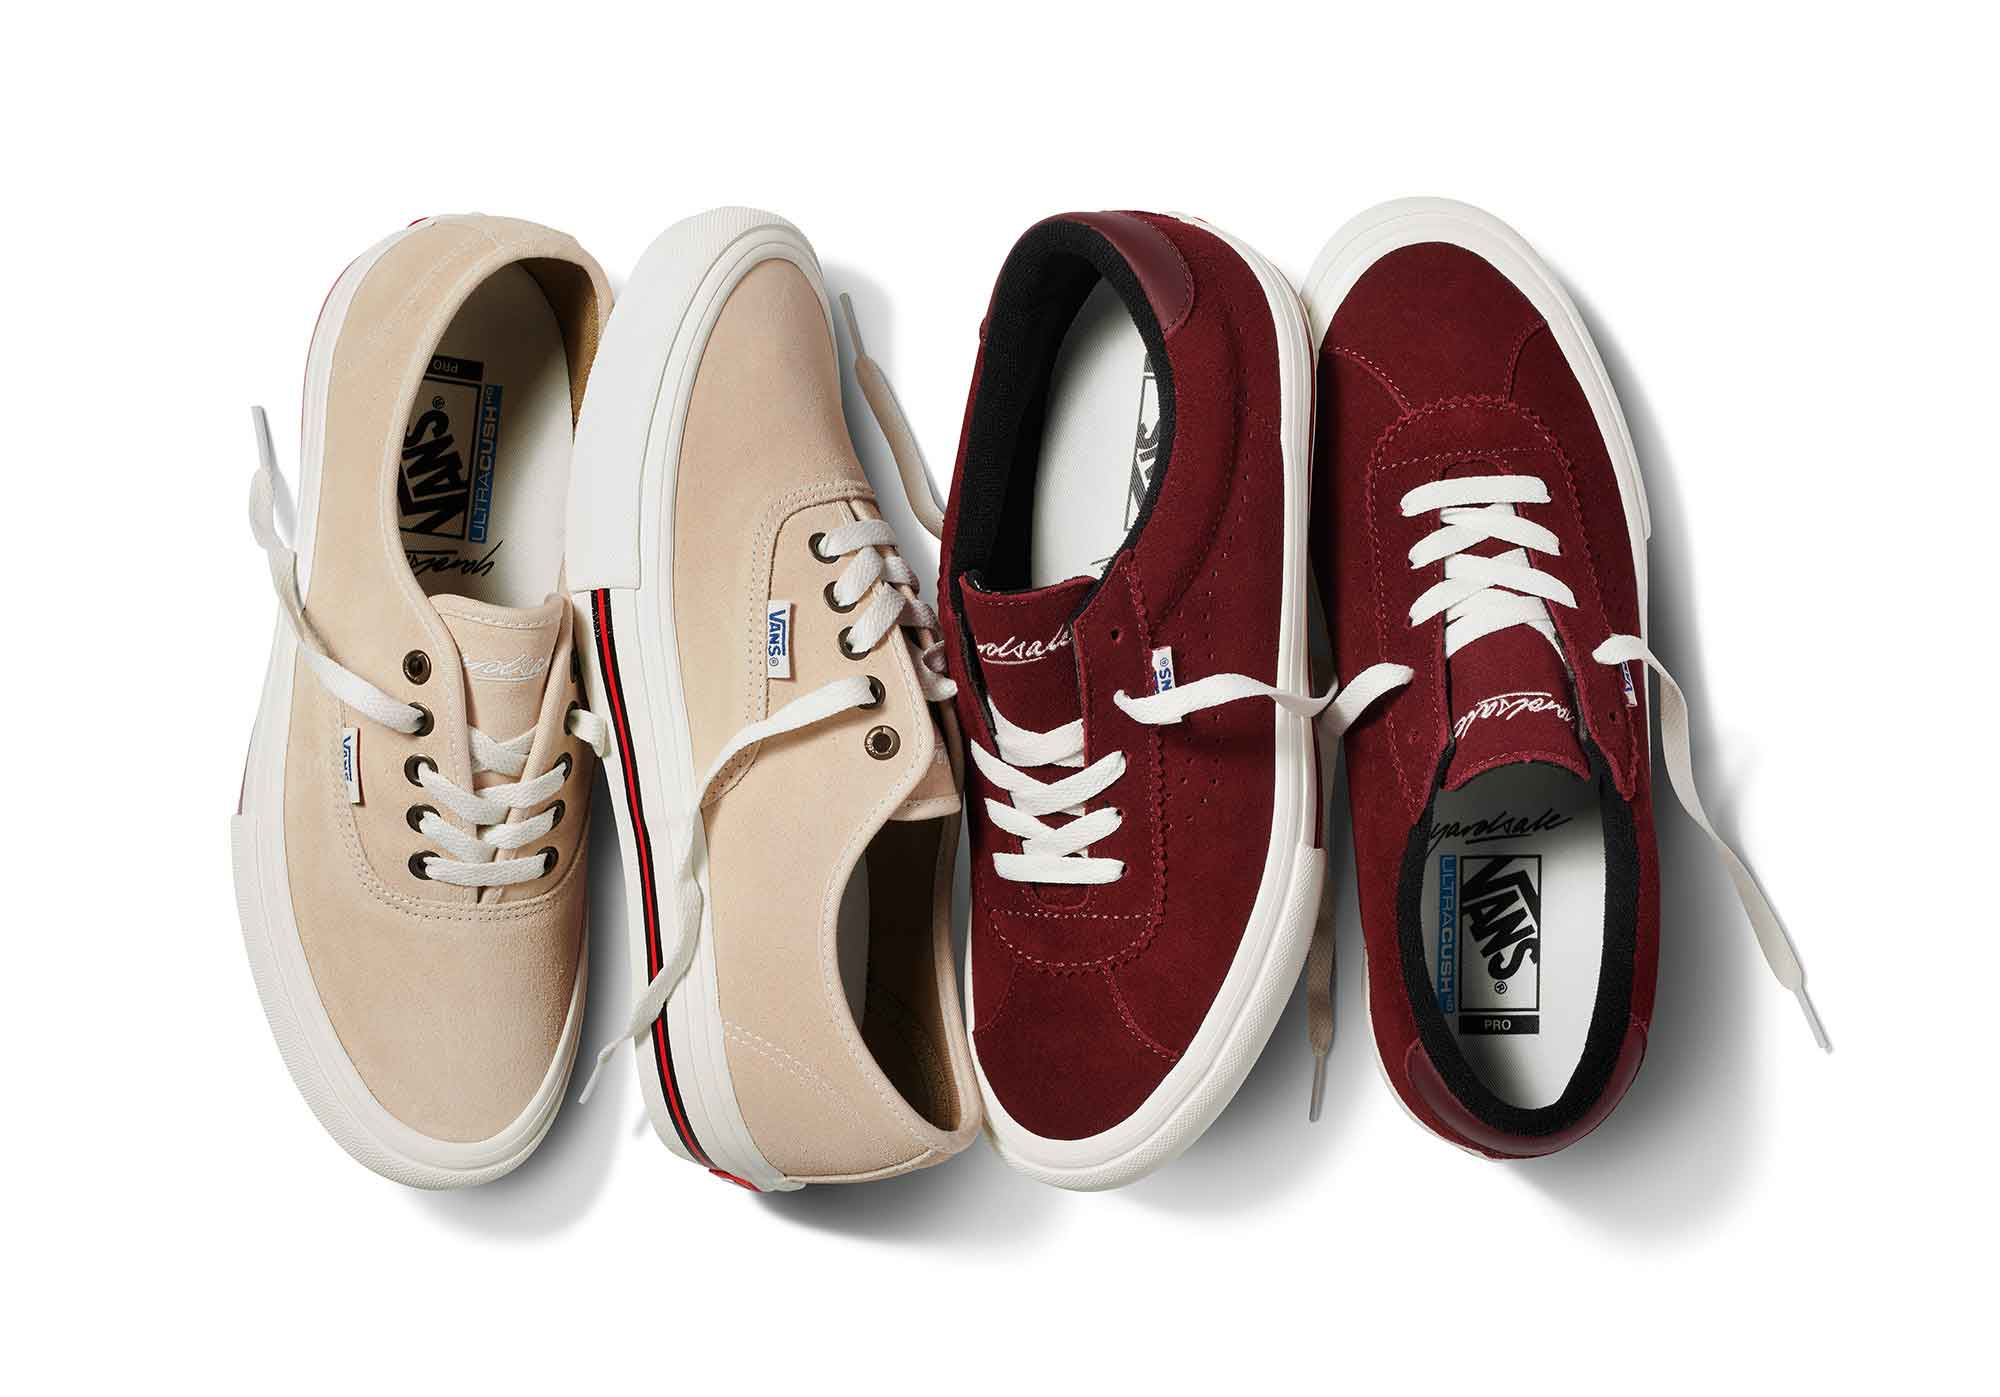 58f3b3288b For more information or to find an authorized Vans Pro Skate dealer near  you